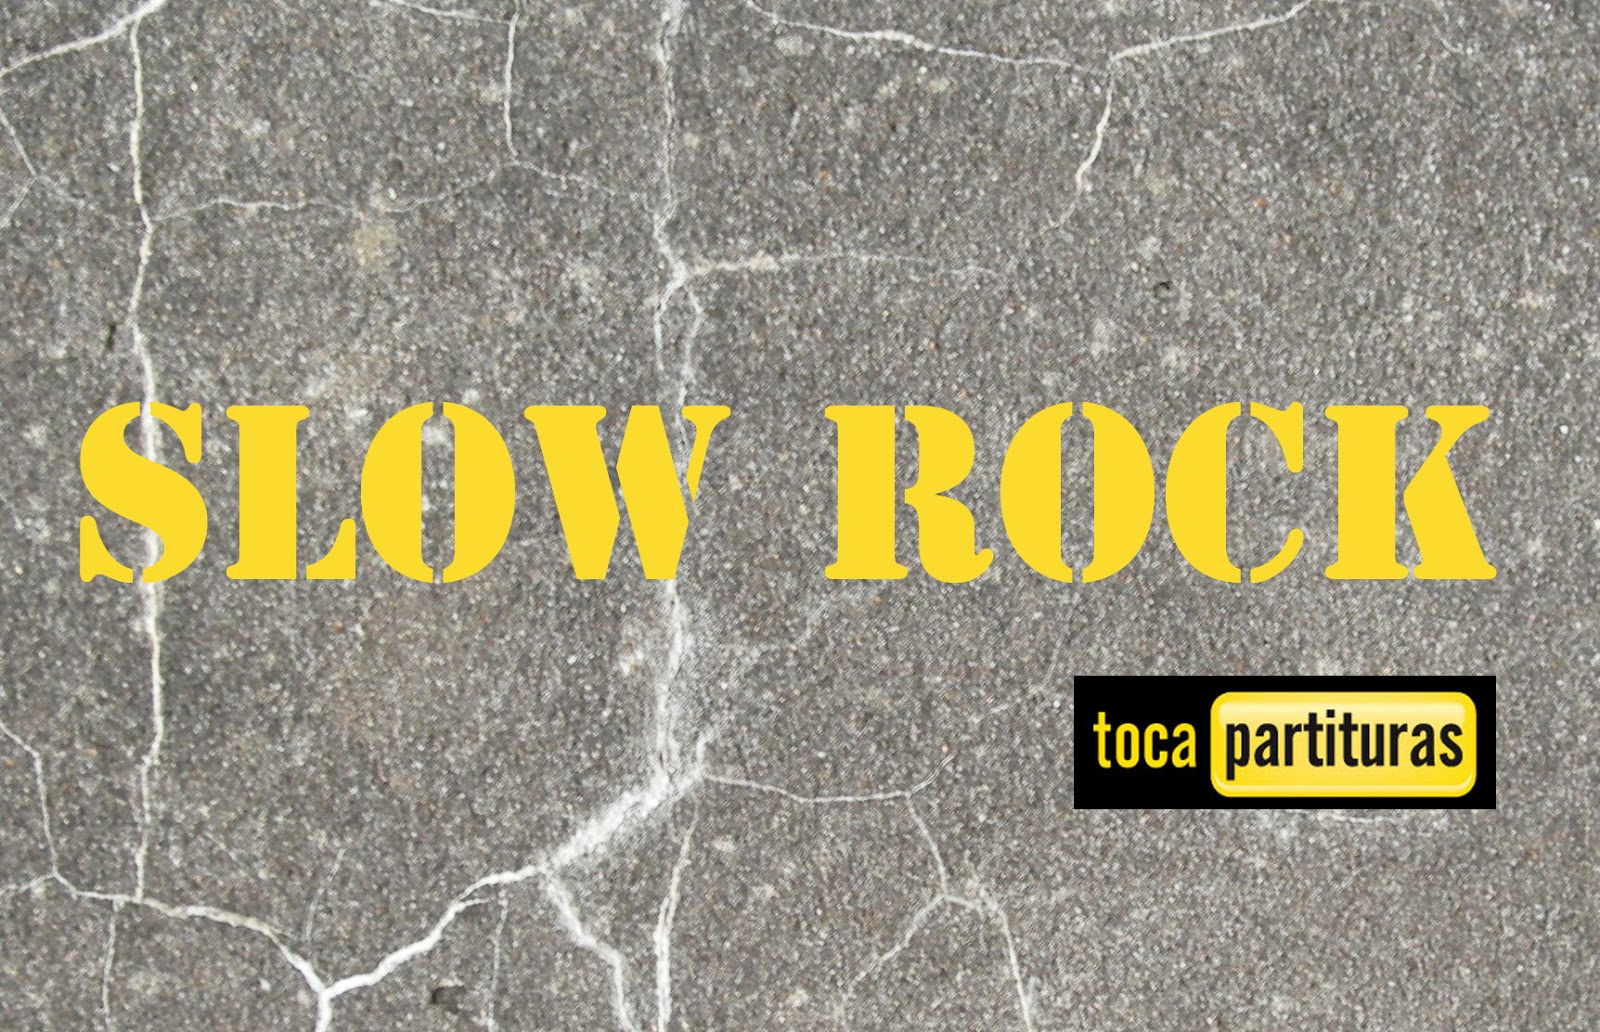 Slow Rock Partitura de Batería fácil para principiantes Rock Lento Sheet Music for Battery and Drums